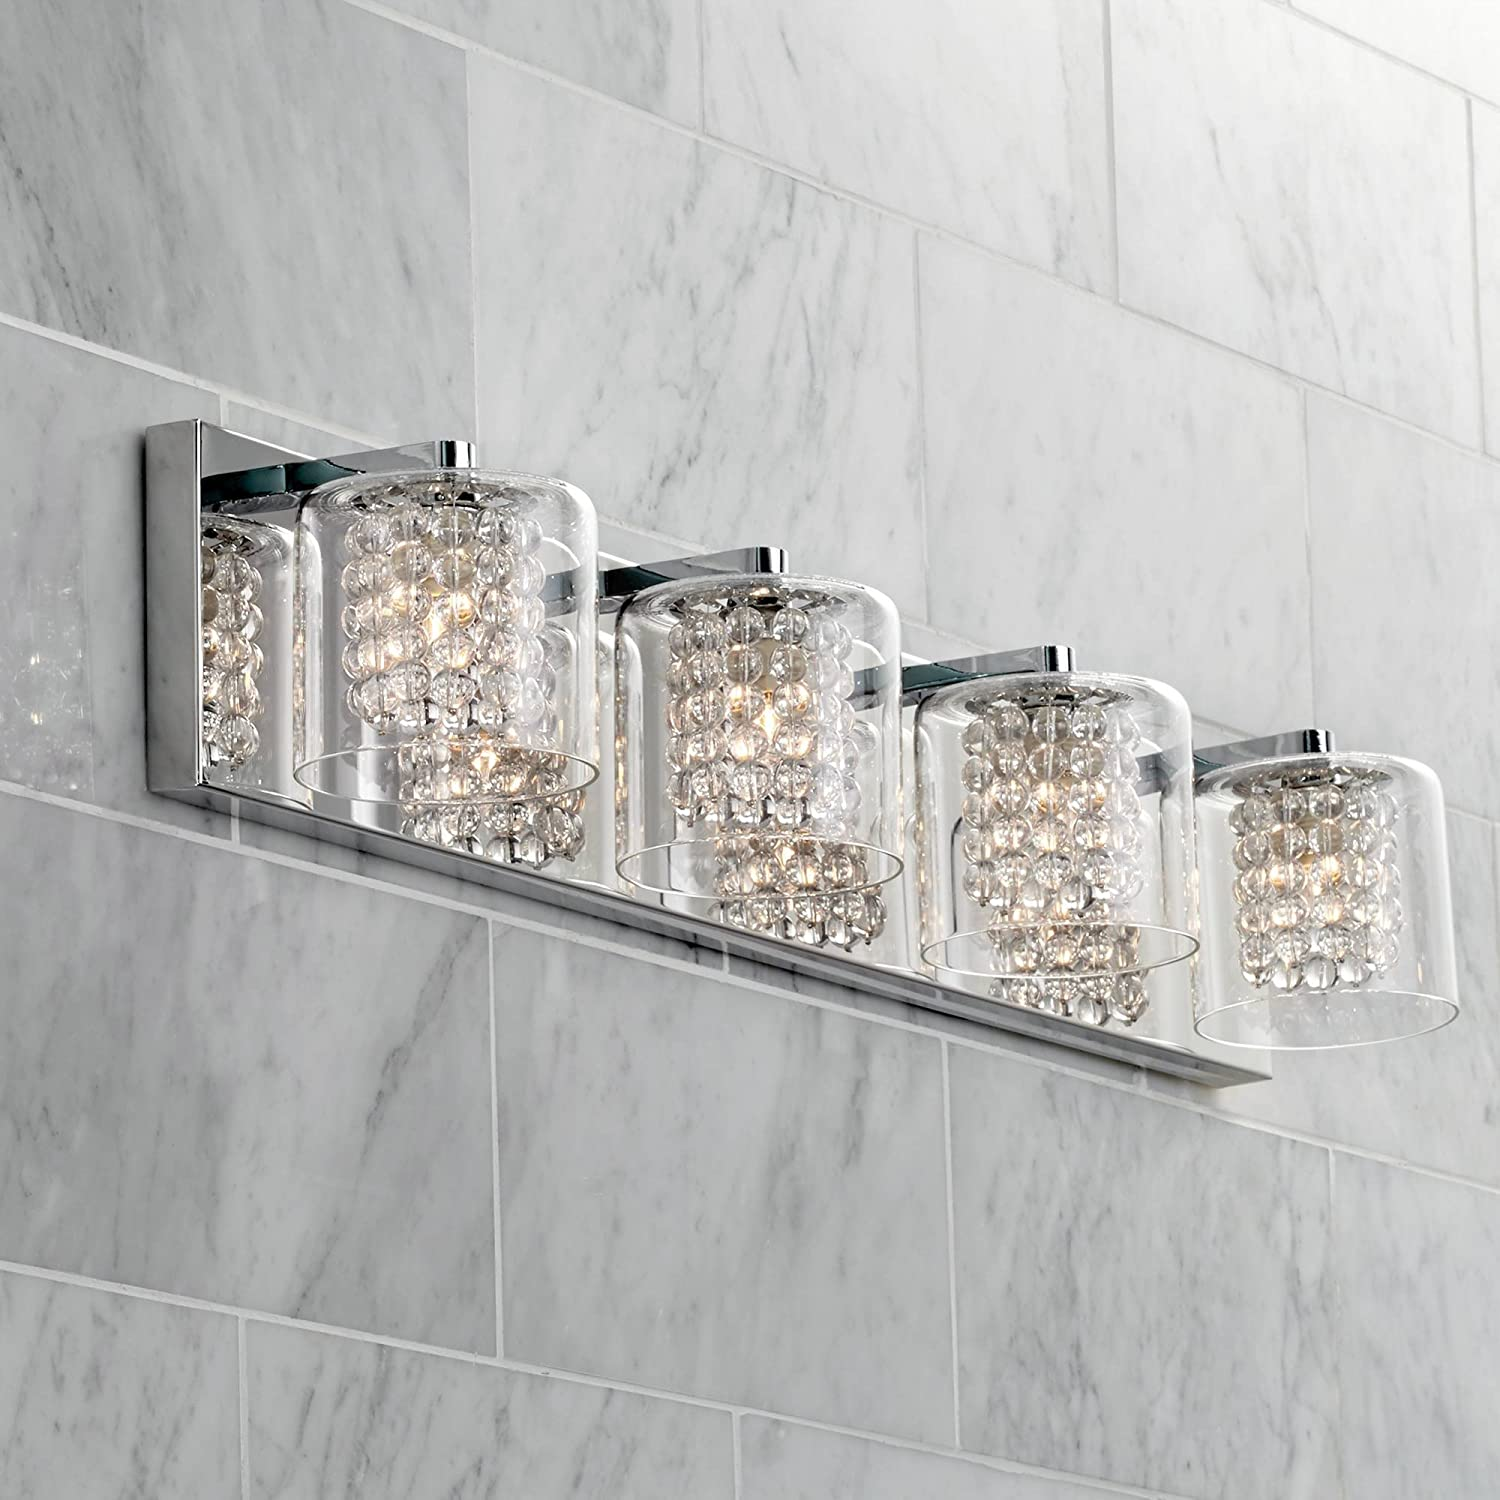 Coco Modern Wall Light Chrome Hardwired 28 1 2 Wide 4-Light Fixture Clear Glass Crystal Strands for Bathroom Vanity – Possini Euro Design